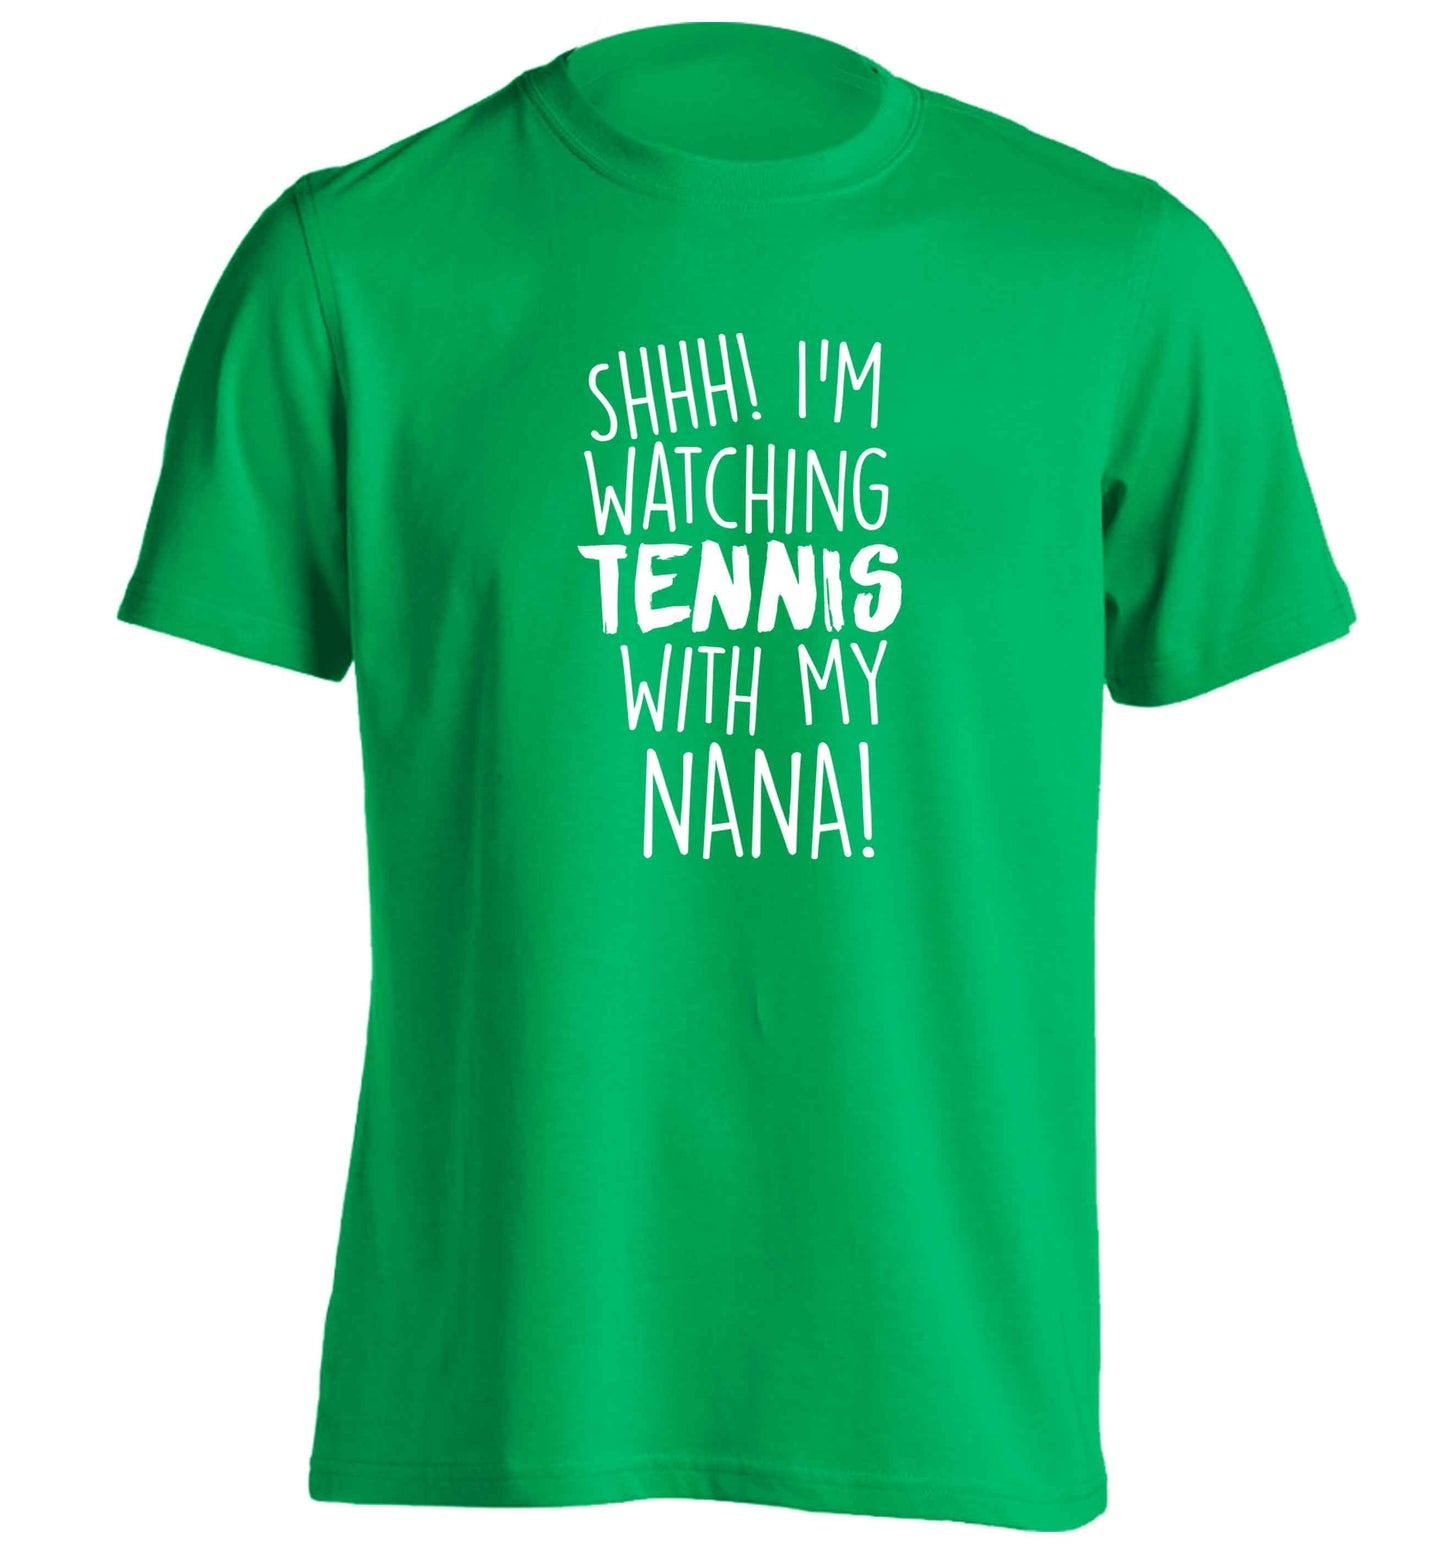 Shh! I'm watching tennis with my nana! adults unisex green Tshirt 2XL